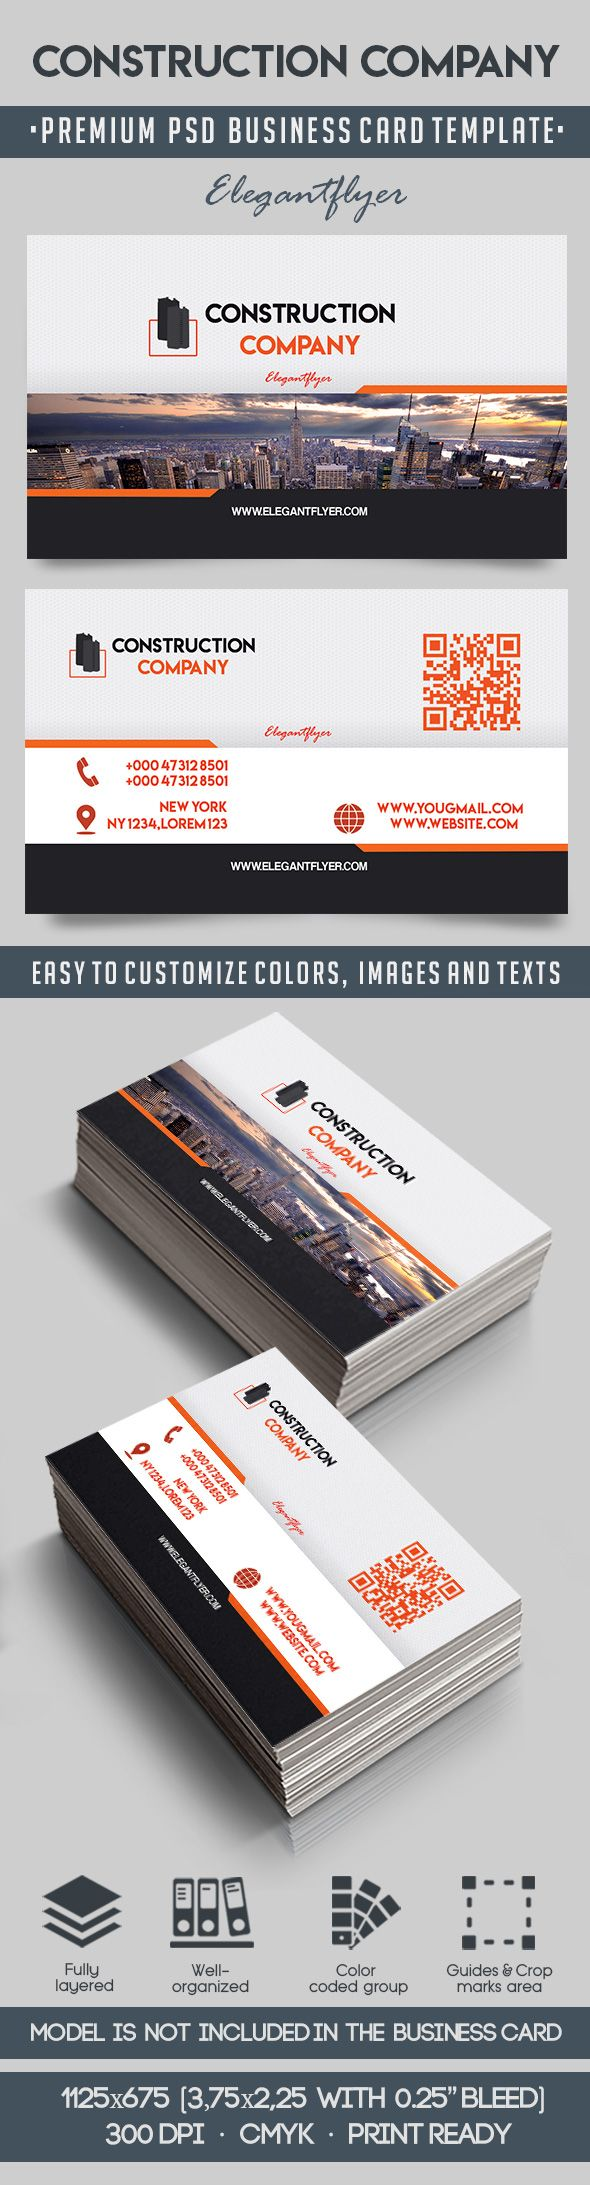 Construction company psd business card by elegantflyer construction company psd business card reheart Image collections